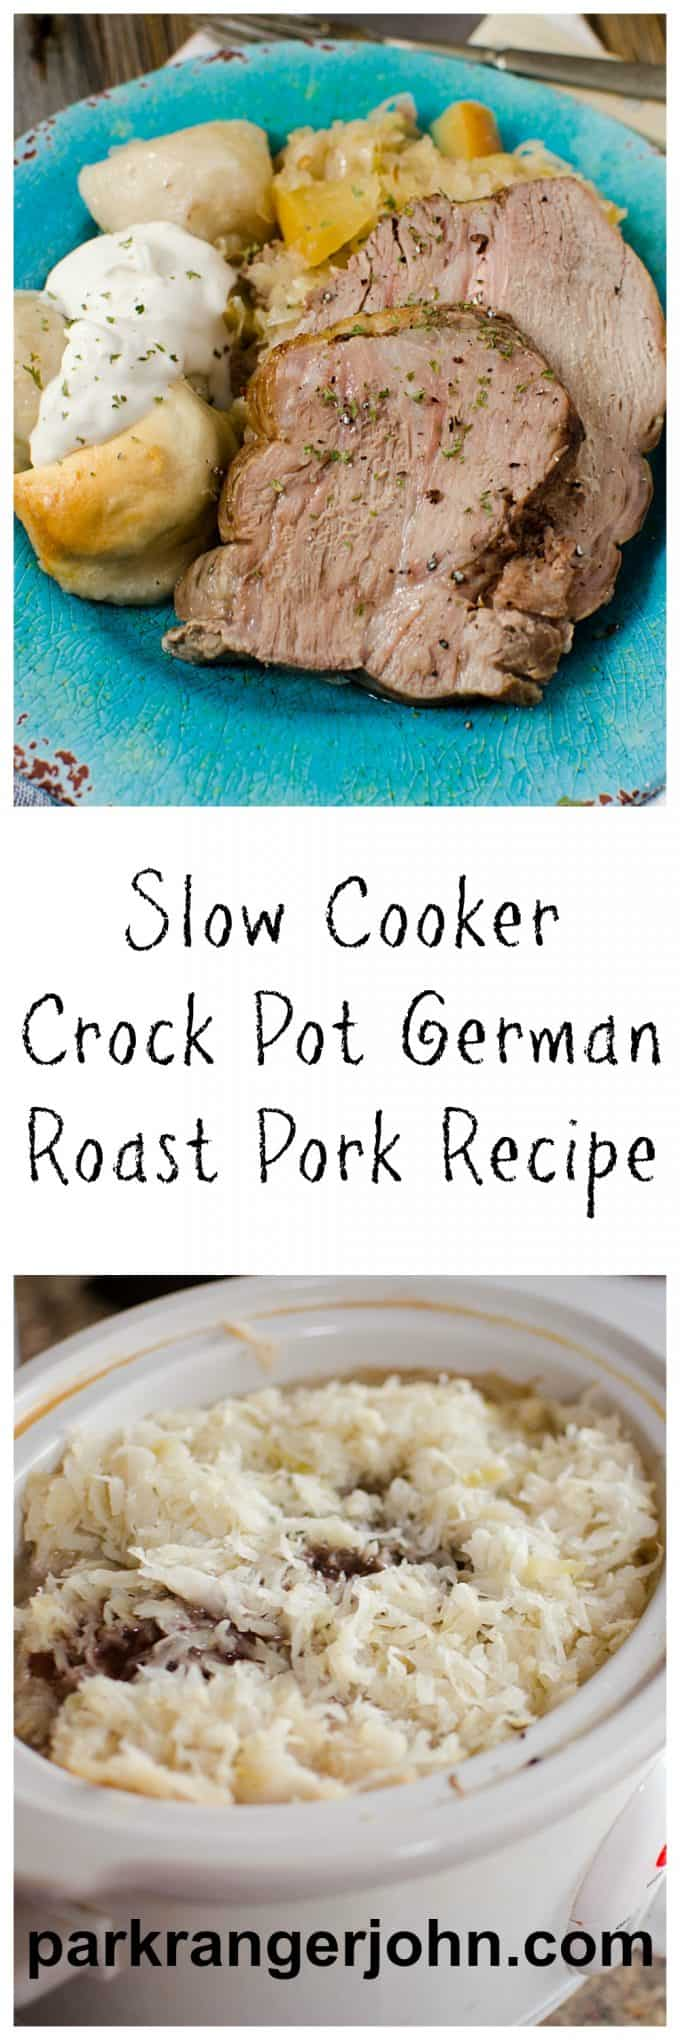 Slow Cooker Crock Pot German Pork Roast & Sauerkraut is one of my favorite dishes. It makes cooking dinners for the family a snap using this easy to follow recipe. #crockpot #slowcooker #recipes #roast #pork